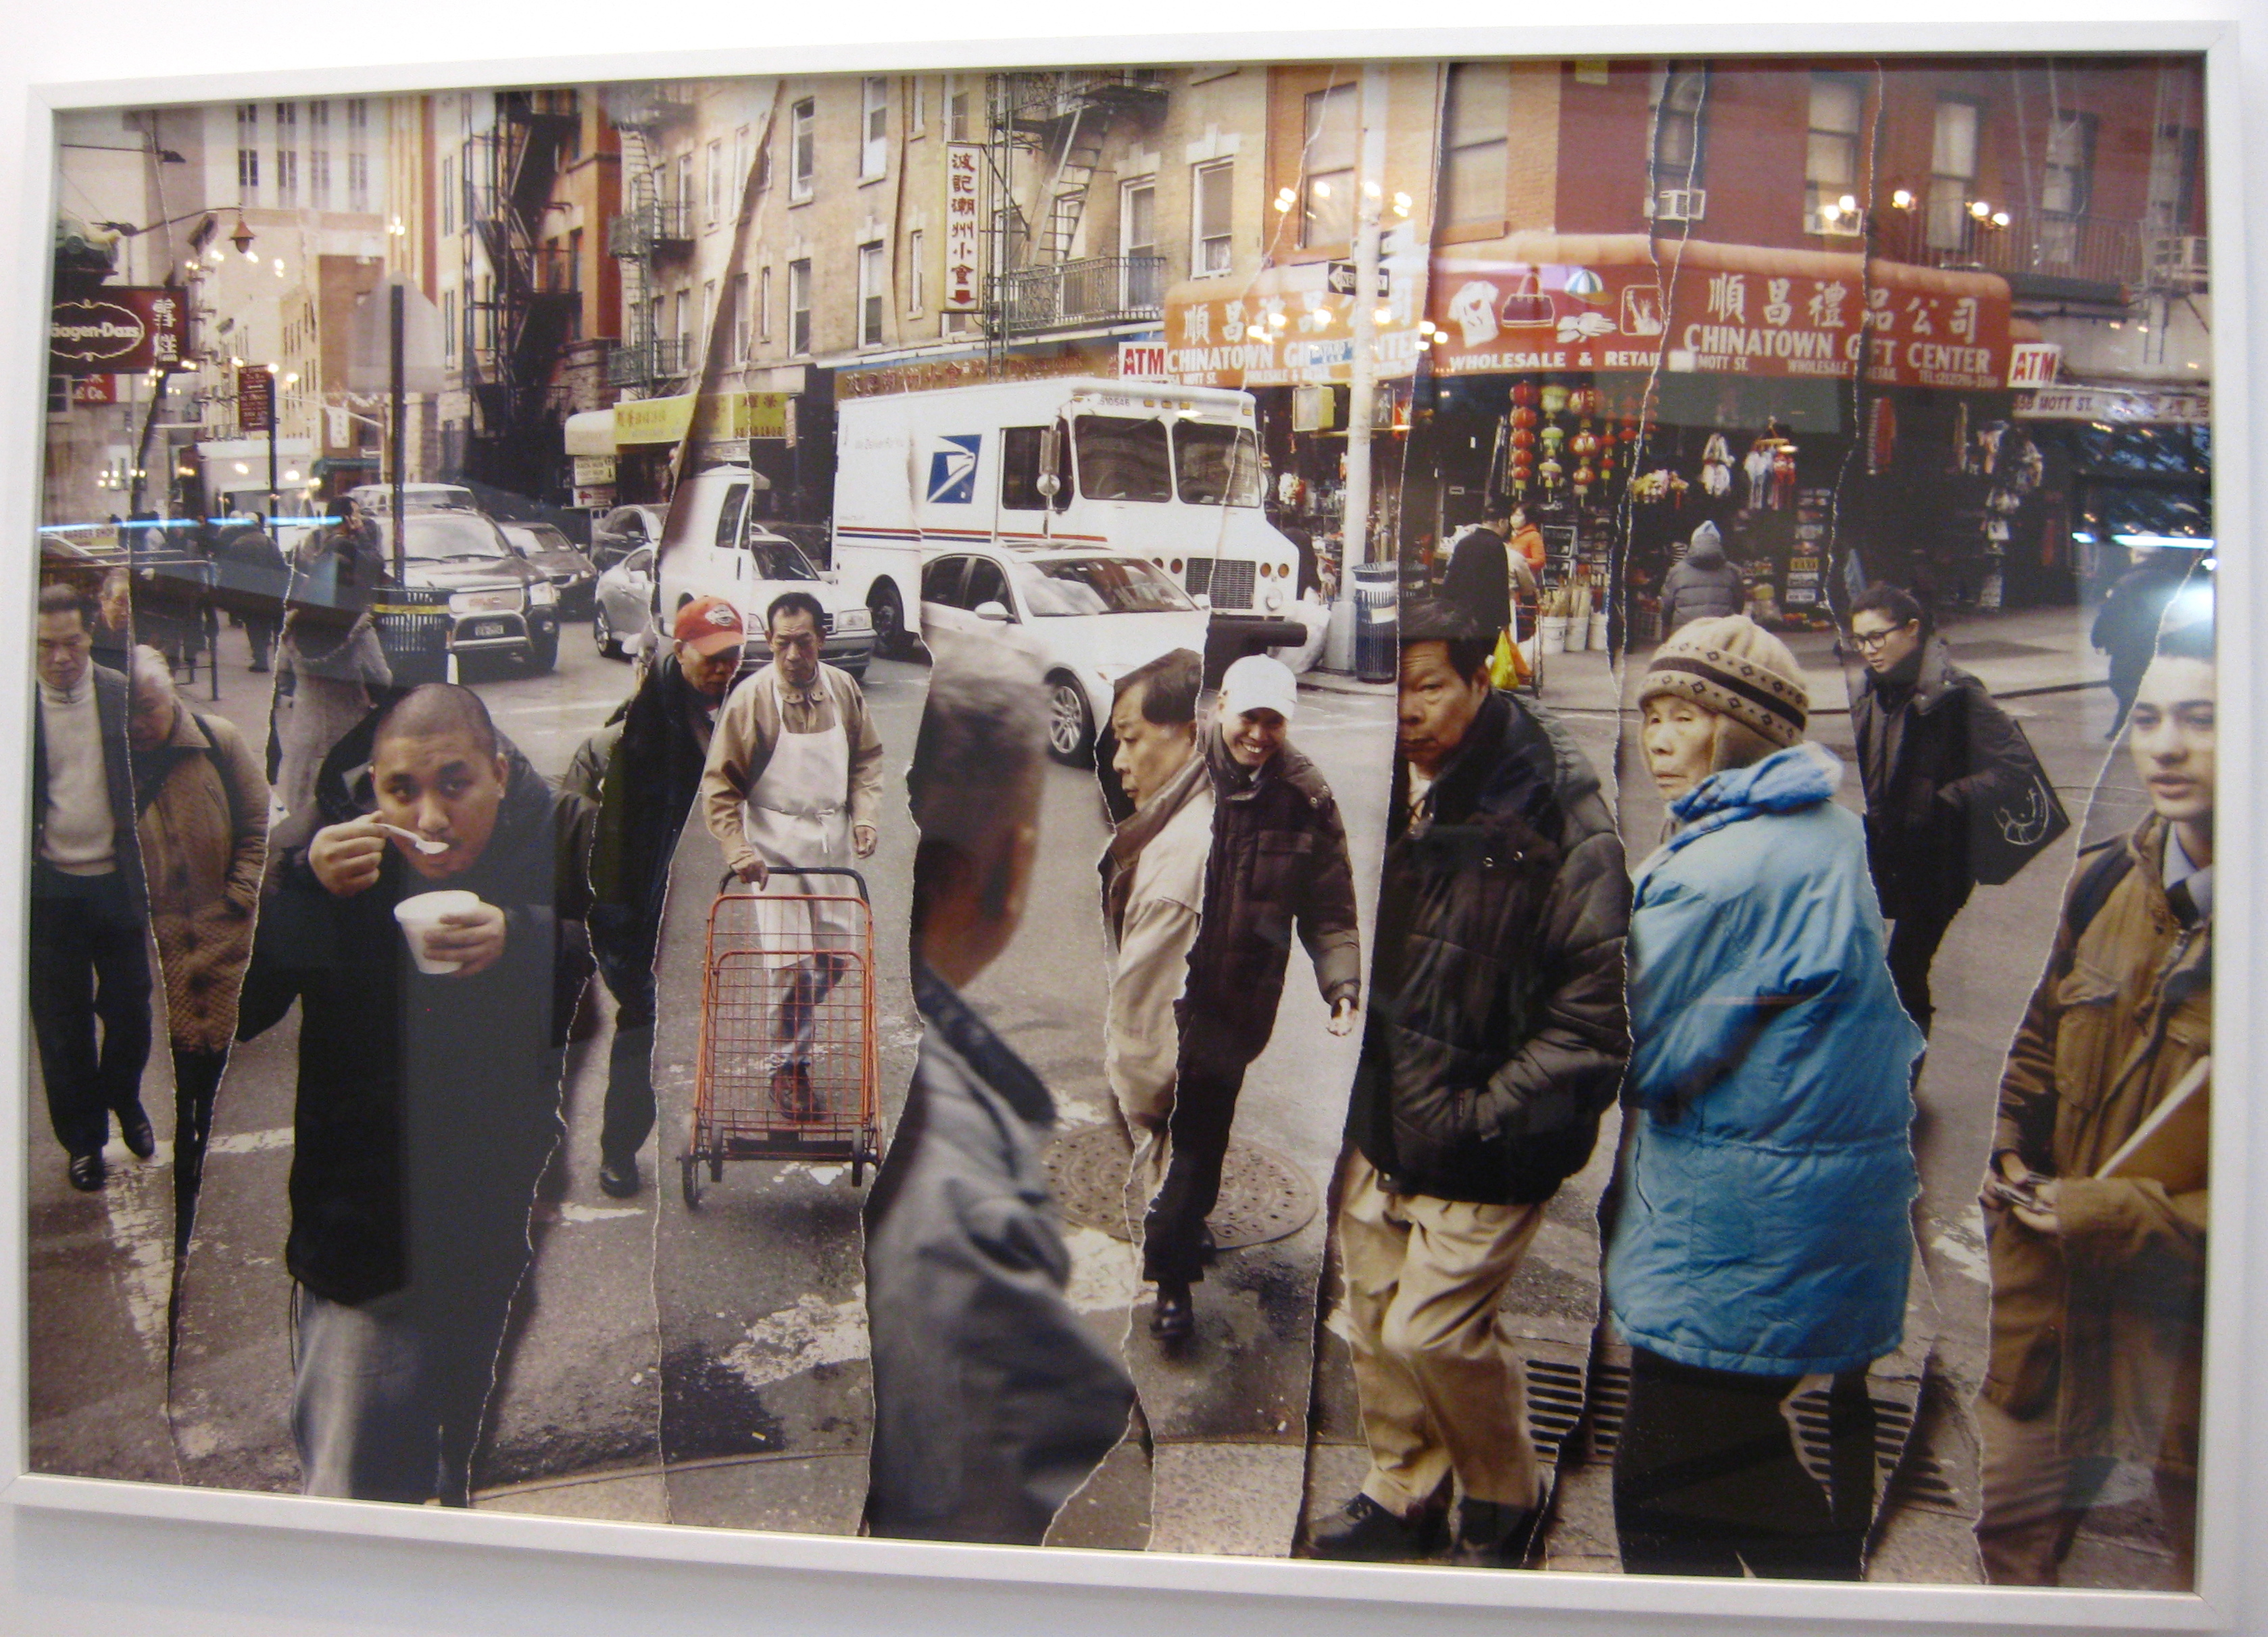 eliot s techniques to convey urban alienation What is positive to one may seem negative or alienating to another – an individual projects their personal experiences and emotions onto the physical landscape, shaping their perspective of the urban environment either positively or negatively – technology is the medium in which alienation is explored but does not relate.